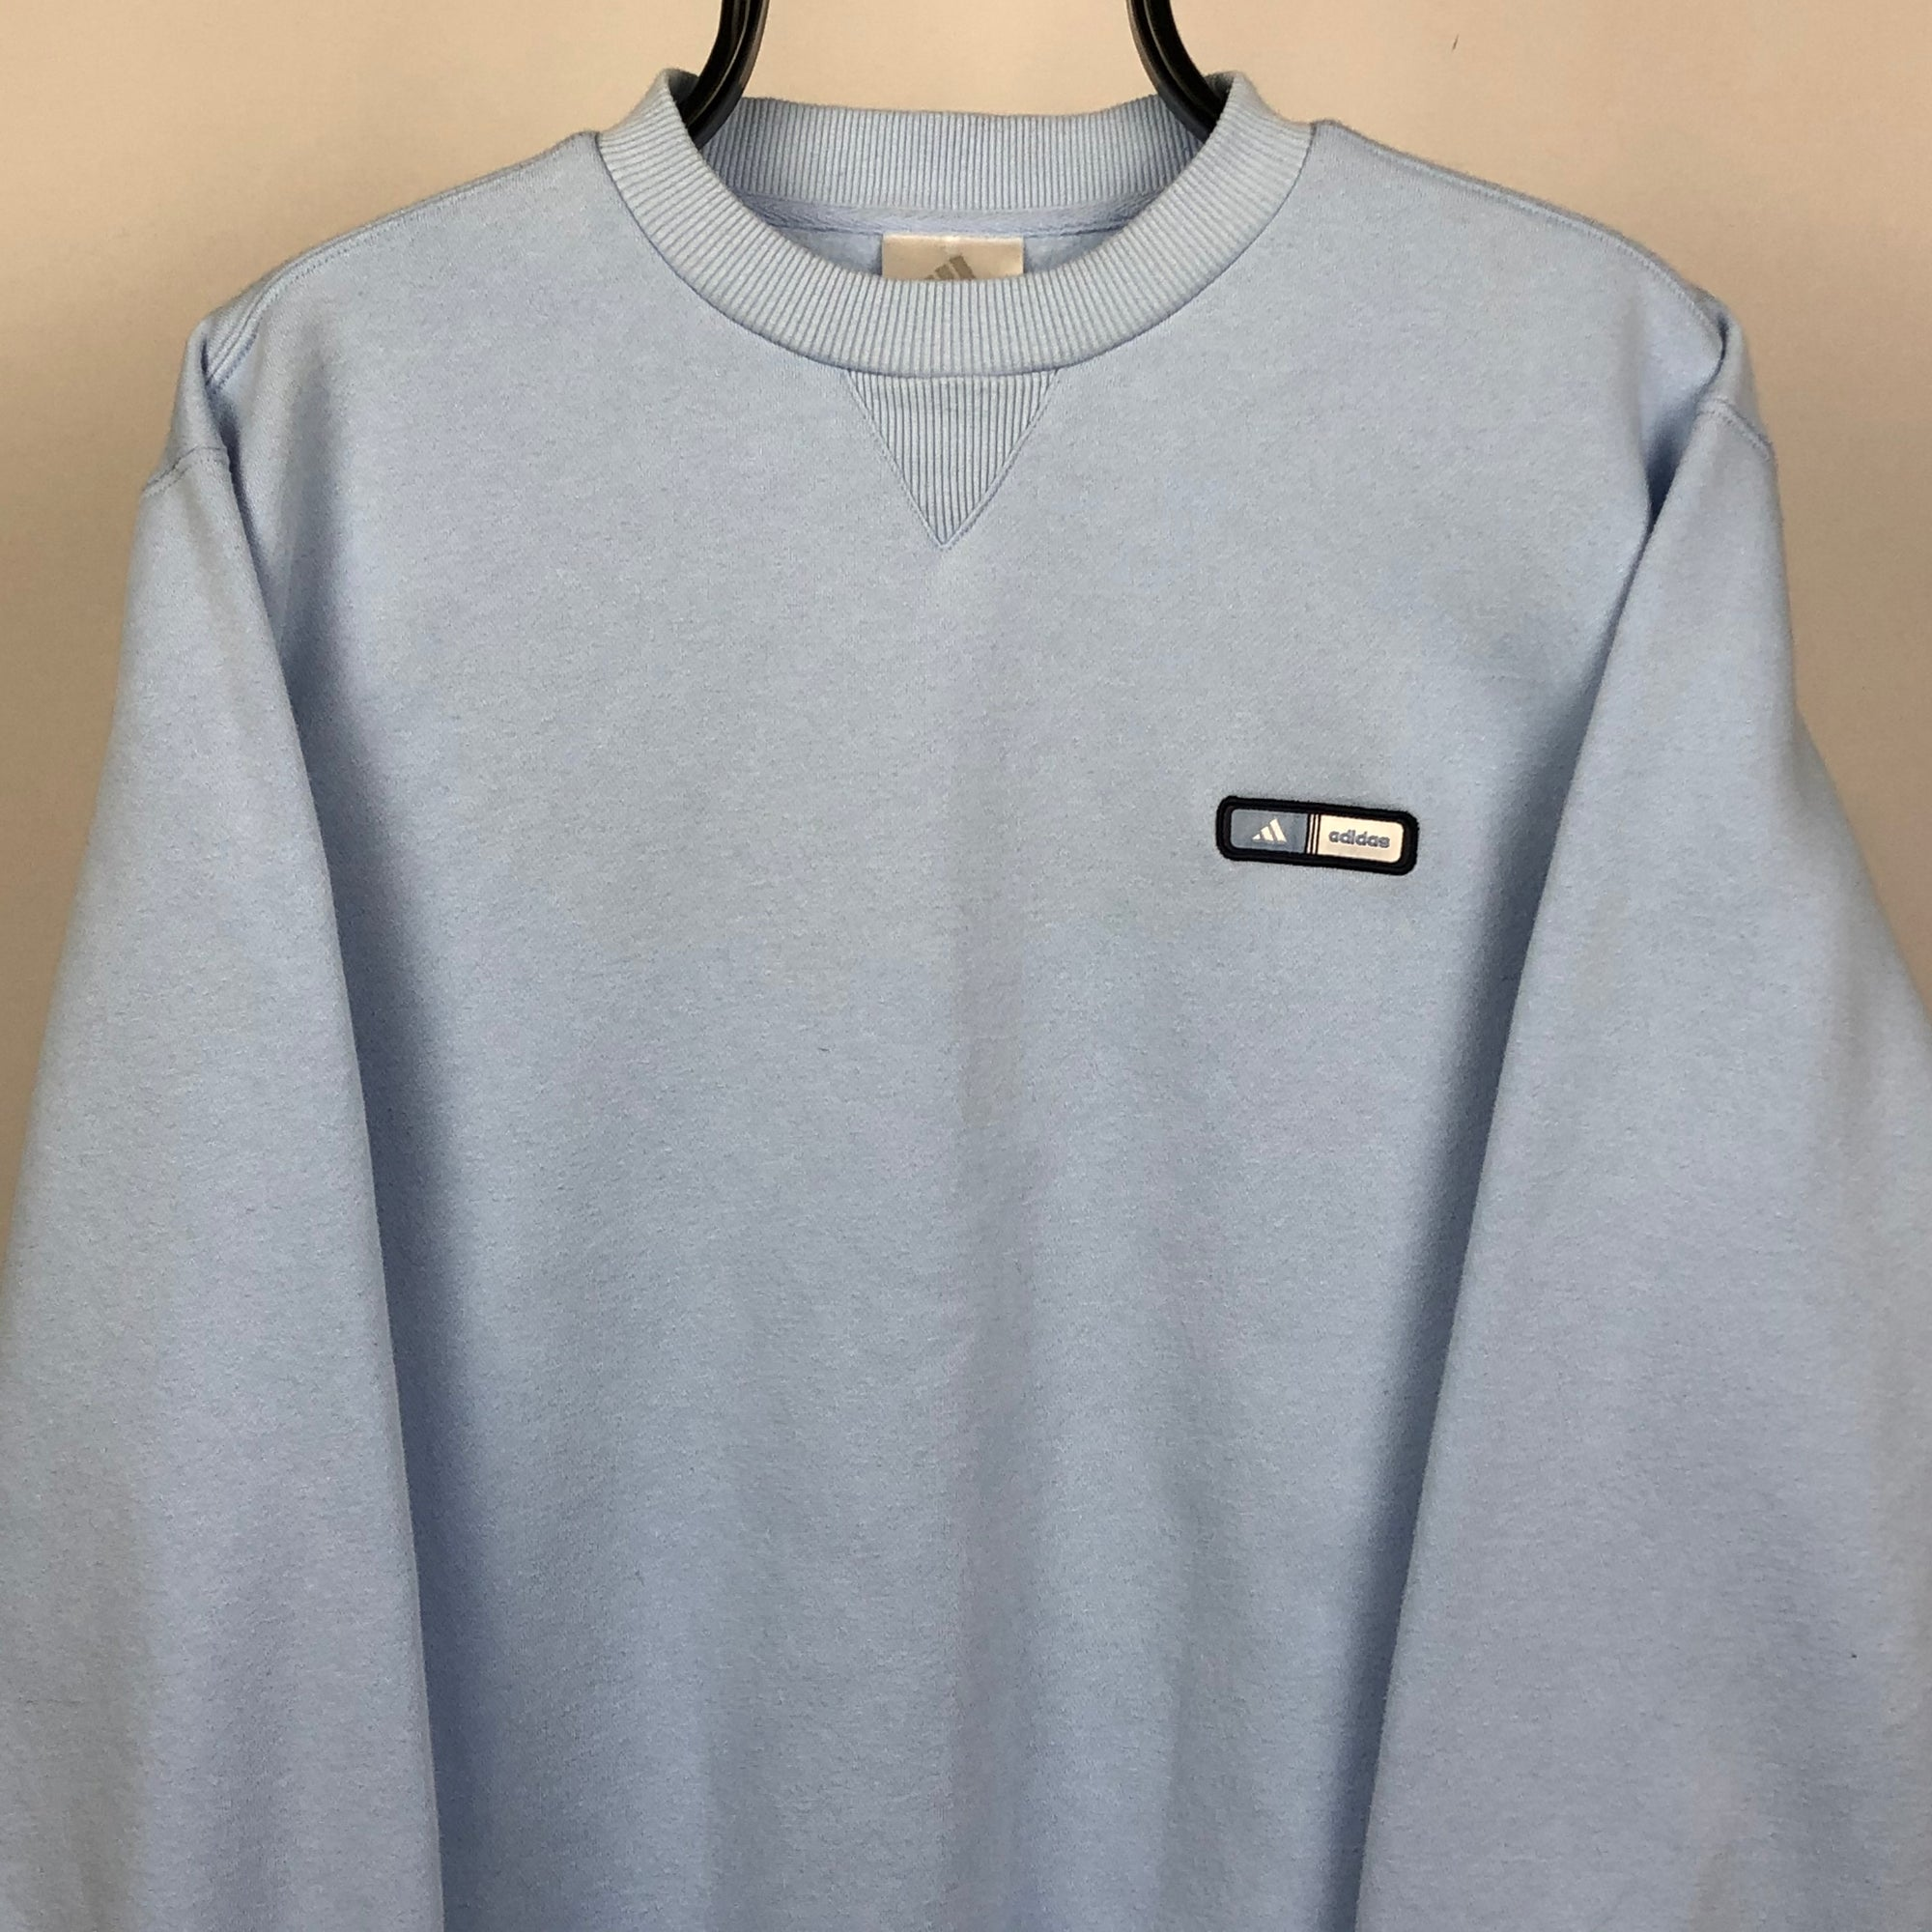 Adidas Sweatshirt in Baby Blue - Men's Medium/Women's Large